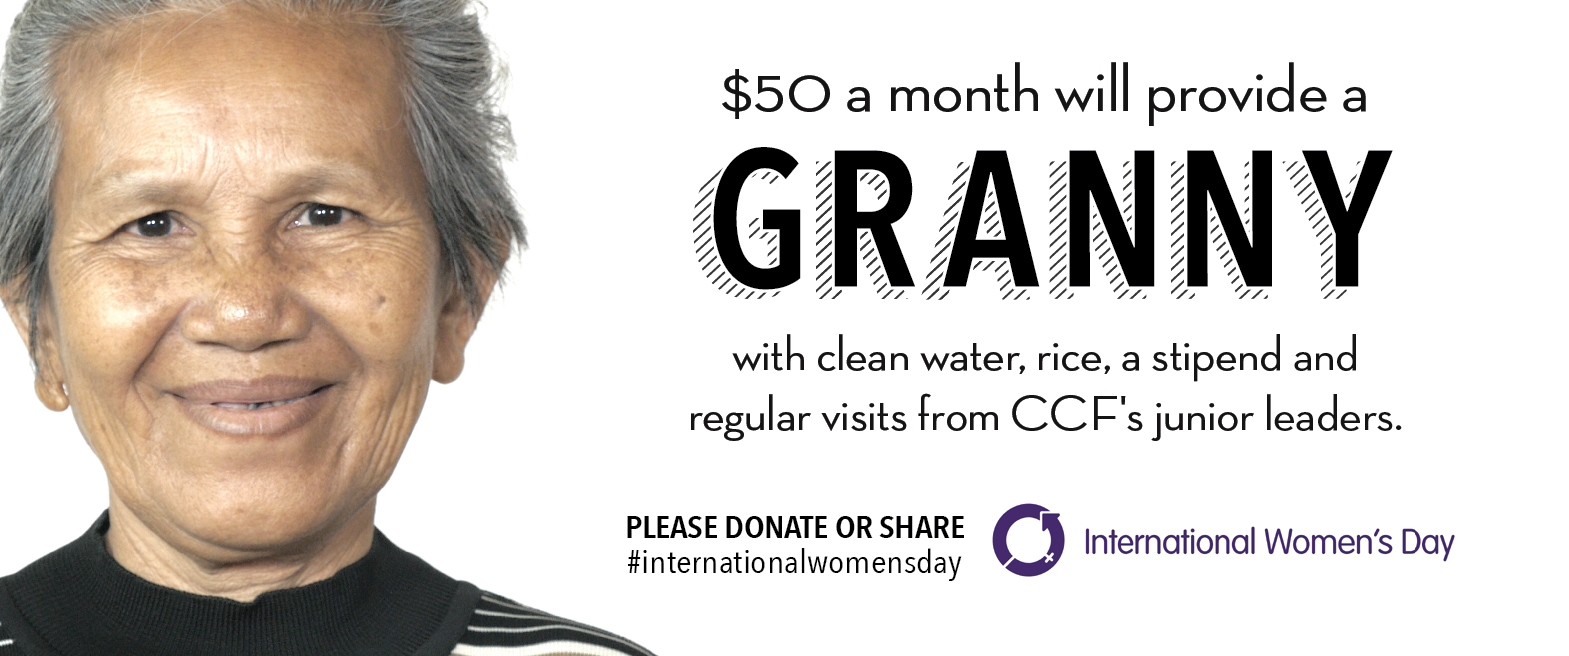 the design that went with theFacebook post of the Granny Sponsorship video